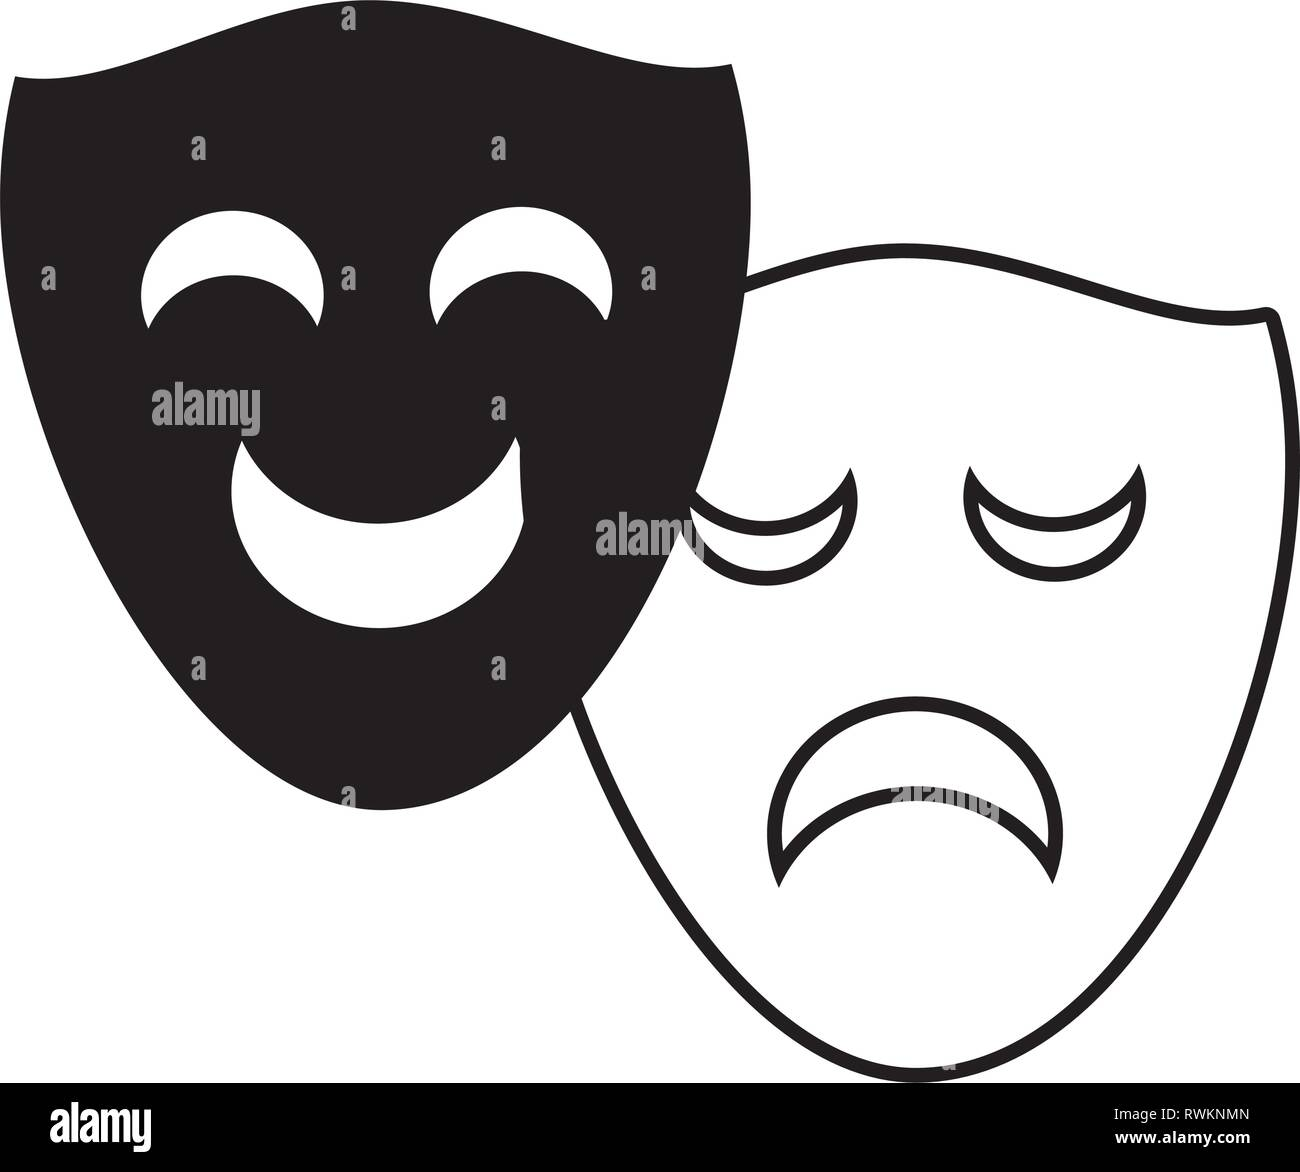 Comedy And Tragedy Masks Stock Photos & Comedy And Tragedy Masks